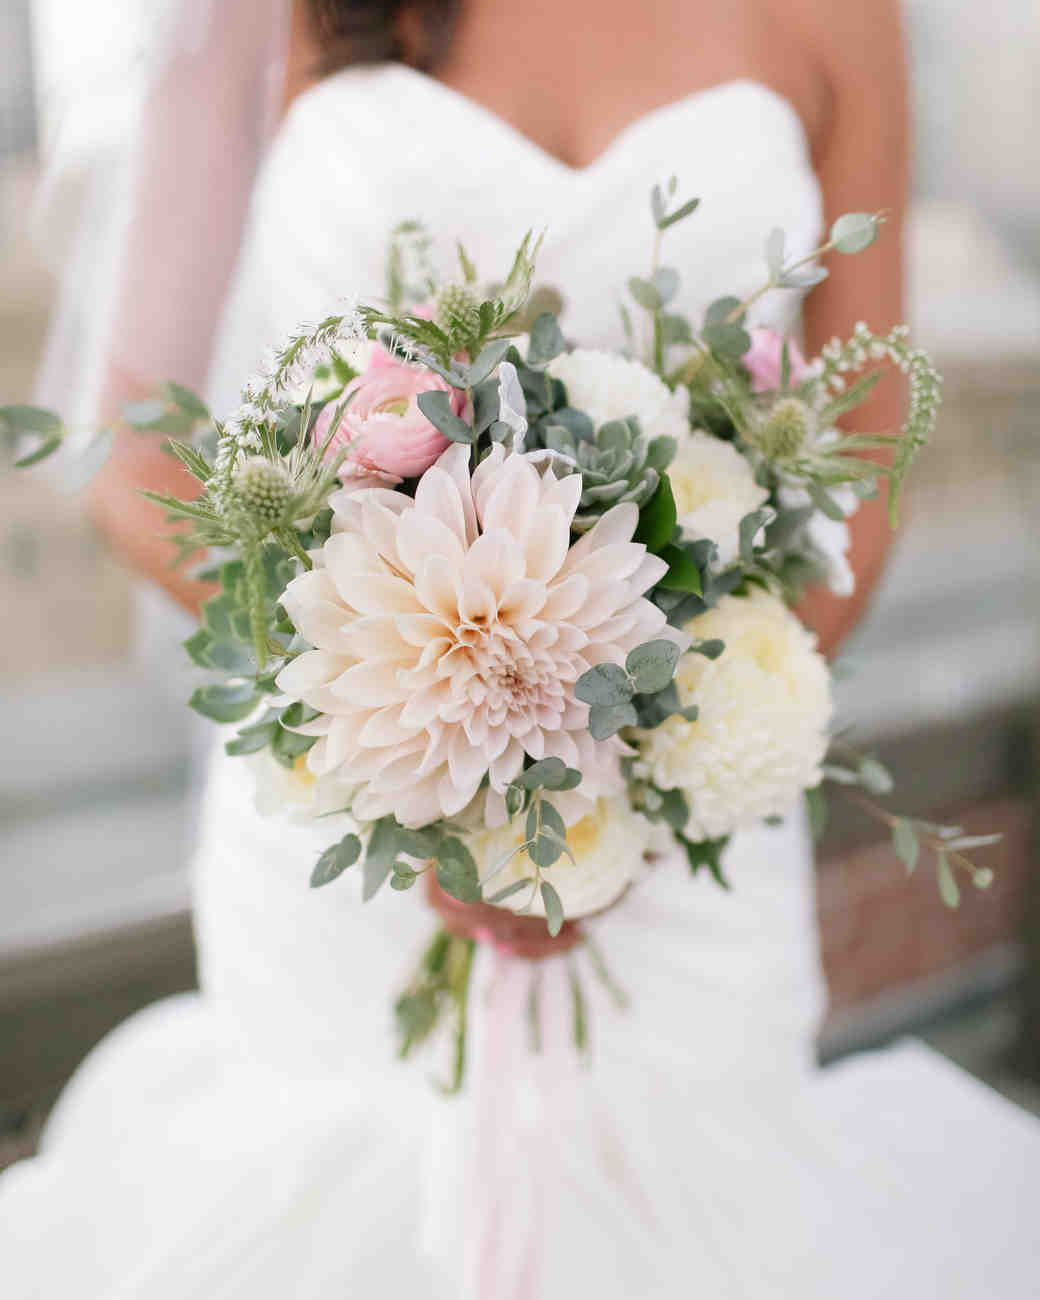 36 Dreamy Dahlia Wedding Bouquets Dahlias Wedding Dahlia Wedding Bouquets Wedding Bouquets